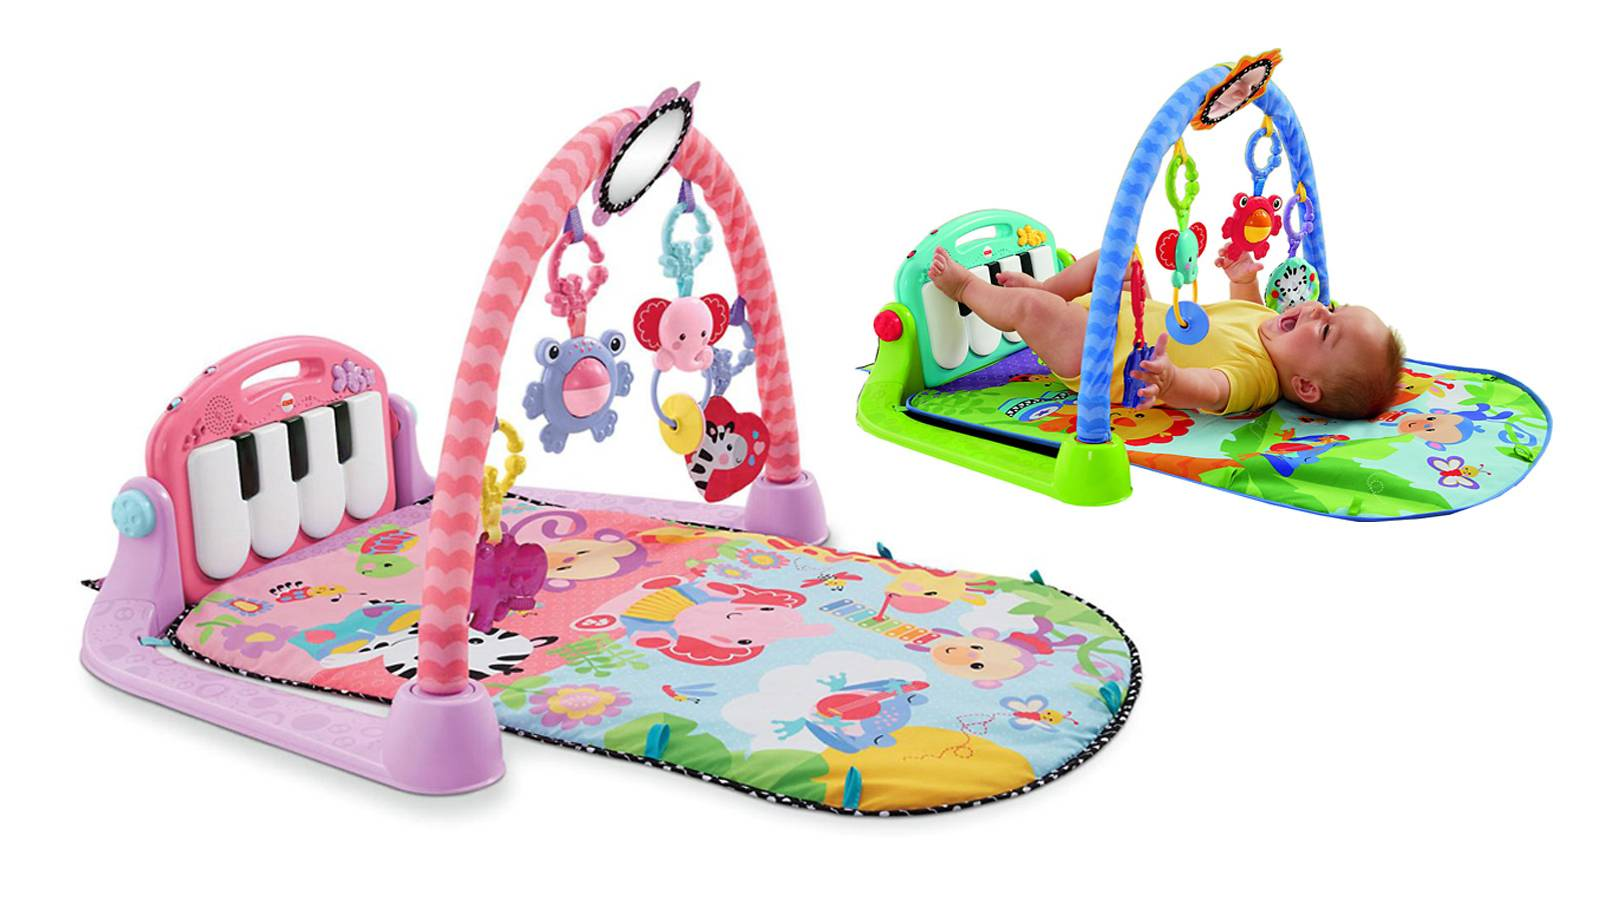 Babies-BUYERS'GUIDE-Top-activity-gyms-for-bubba-FISHER-PRICE-MAT